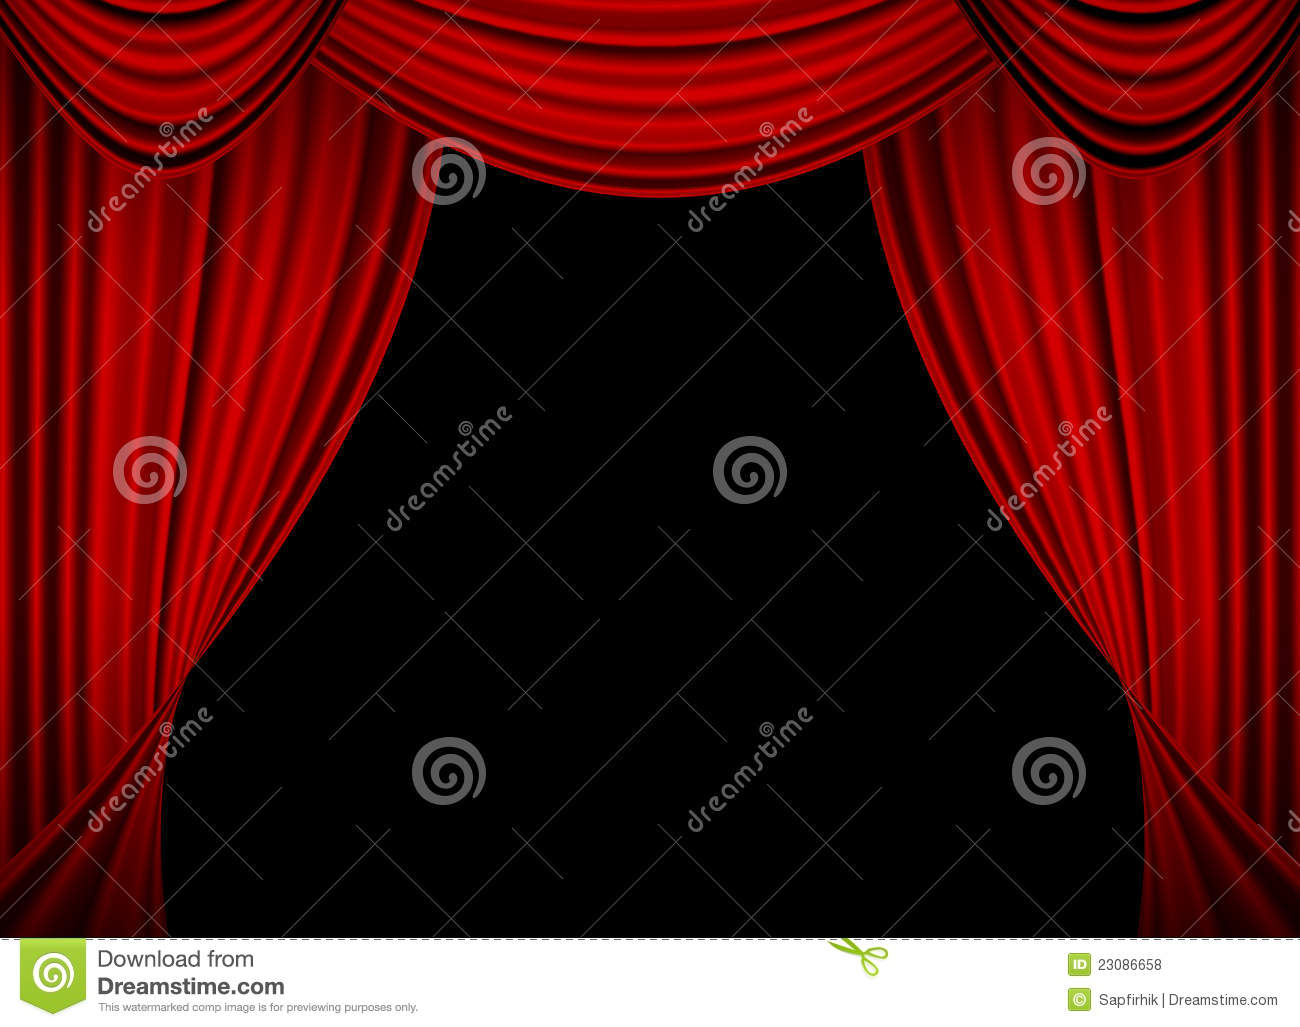 Movie Or Theatre Curtain Royalty Free Stock Photos - Image: 23086658